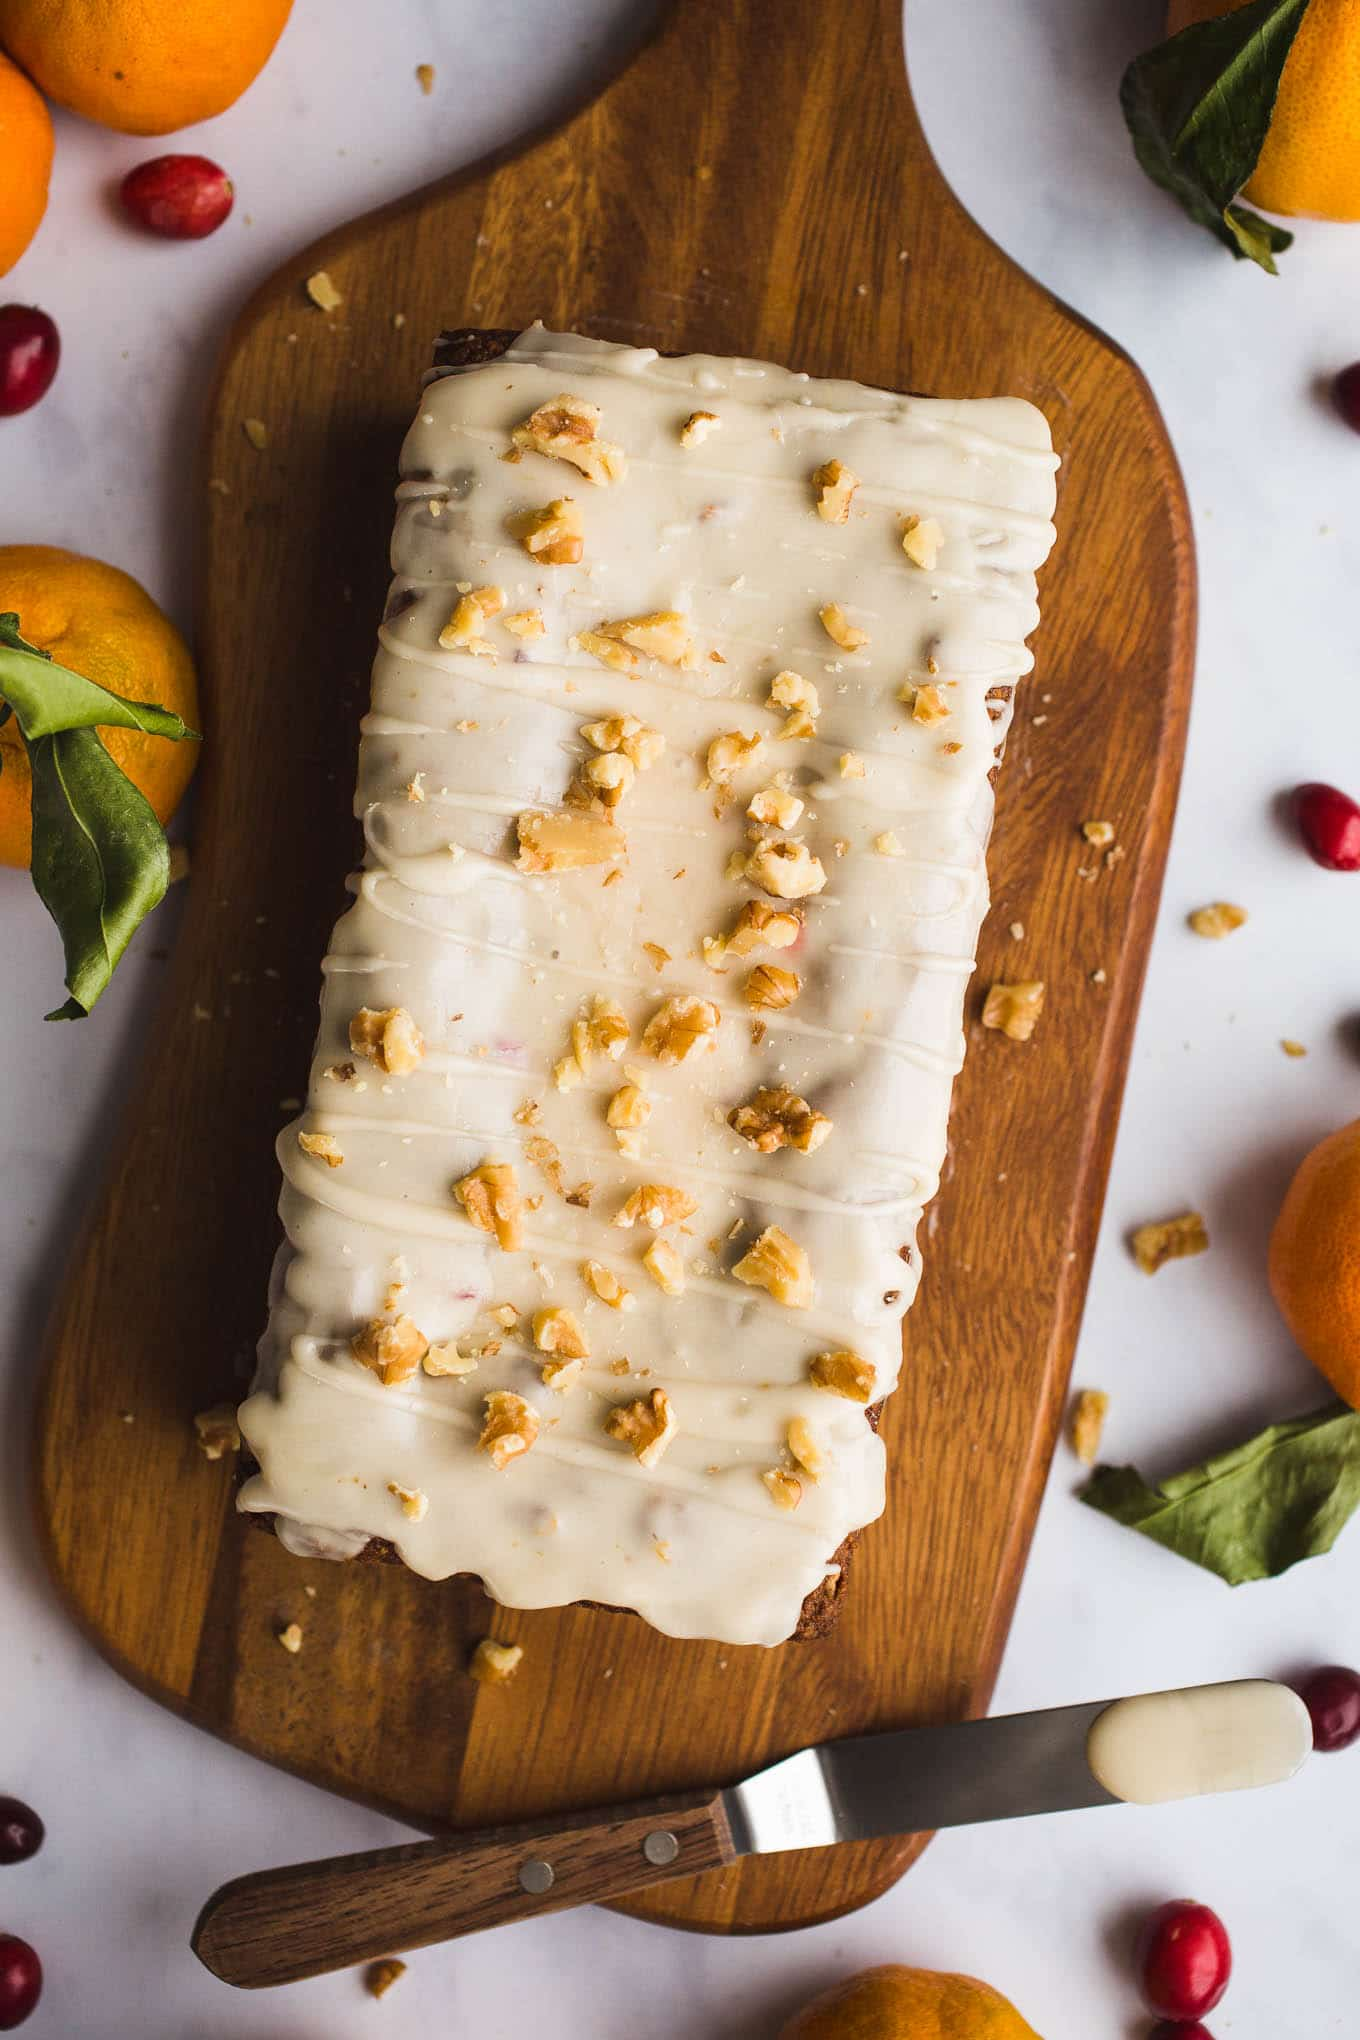 A healthier, moist, Gluten-Free Cranberry Orange Bread with an orange glaze made with almond and oat flours. Vegan. Have it for breakfast or dessert!